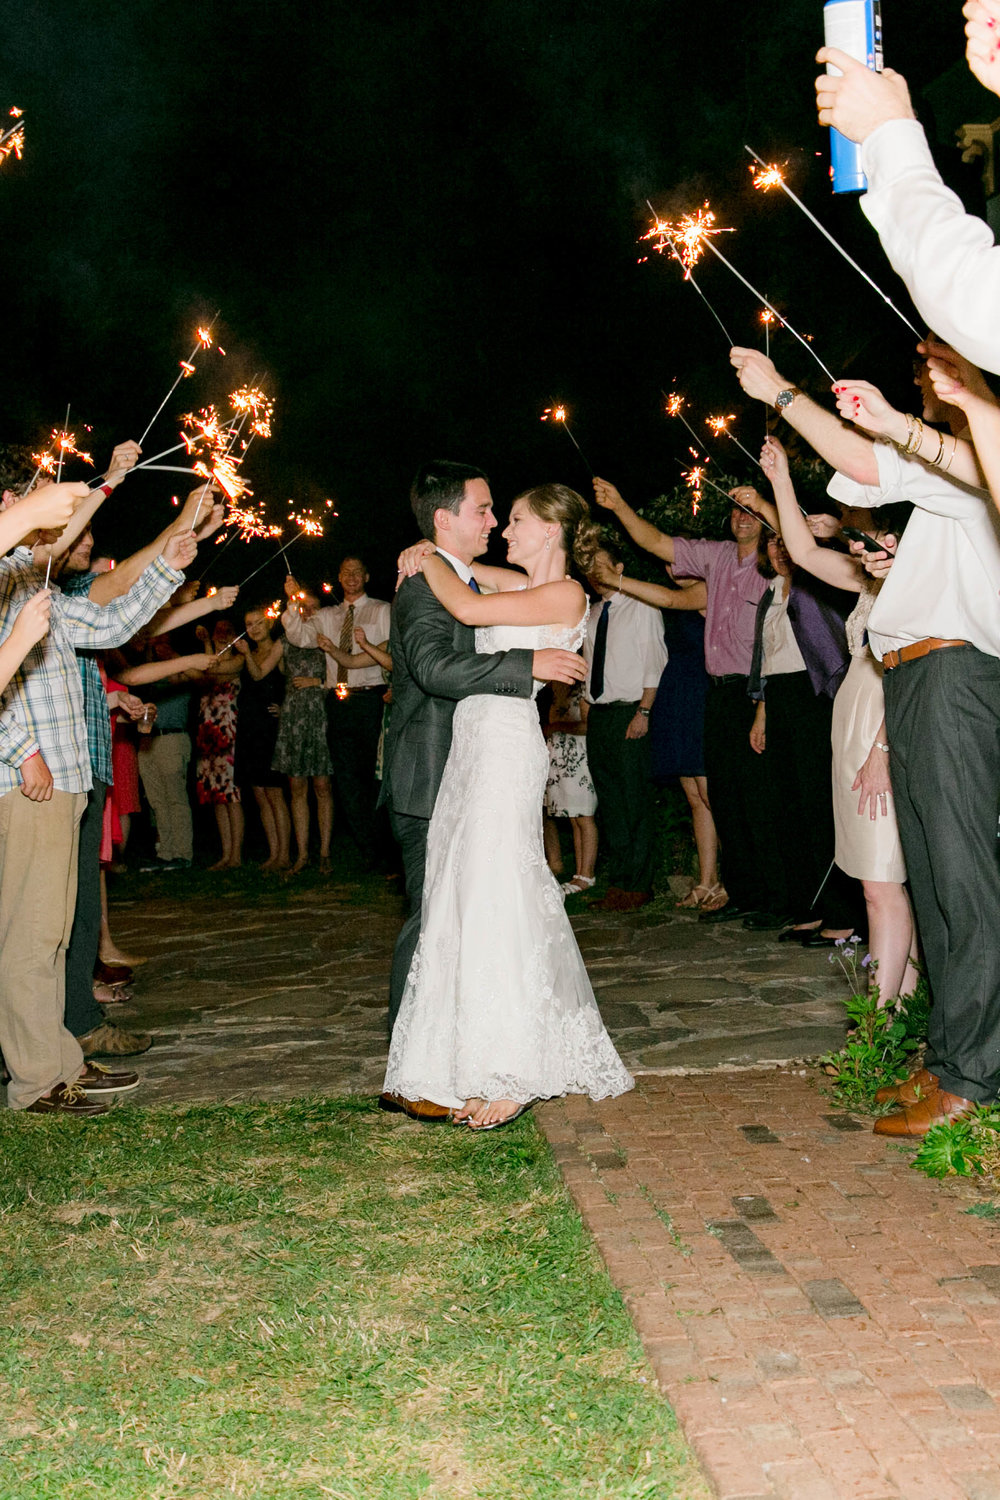 Hot Springs, NC wedding, East Tennessee Wedding photography, wedding reception, sparkler exit